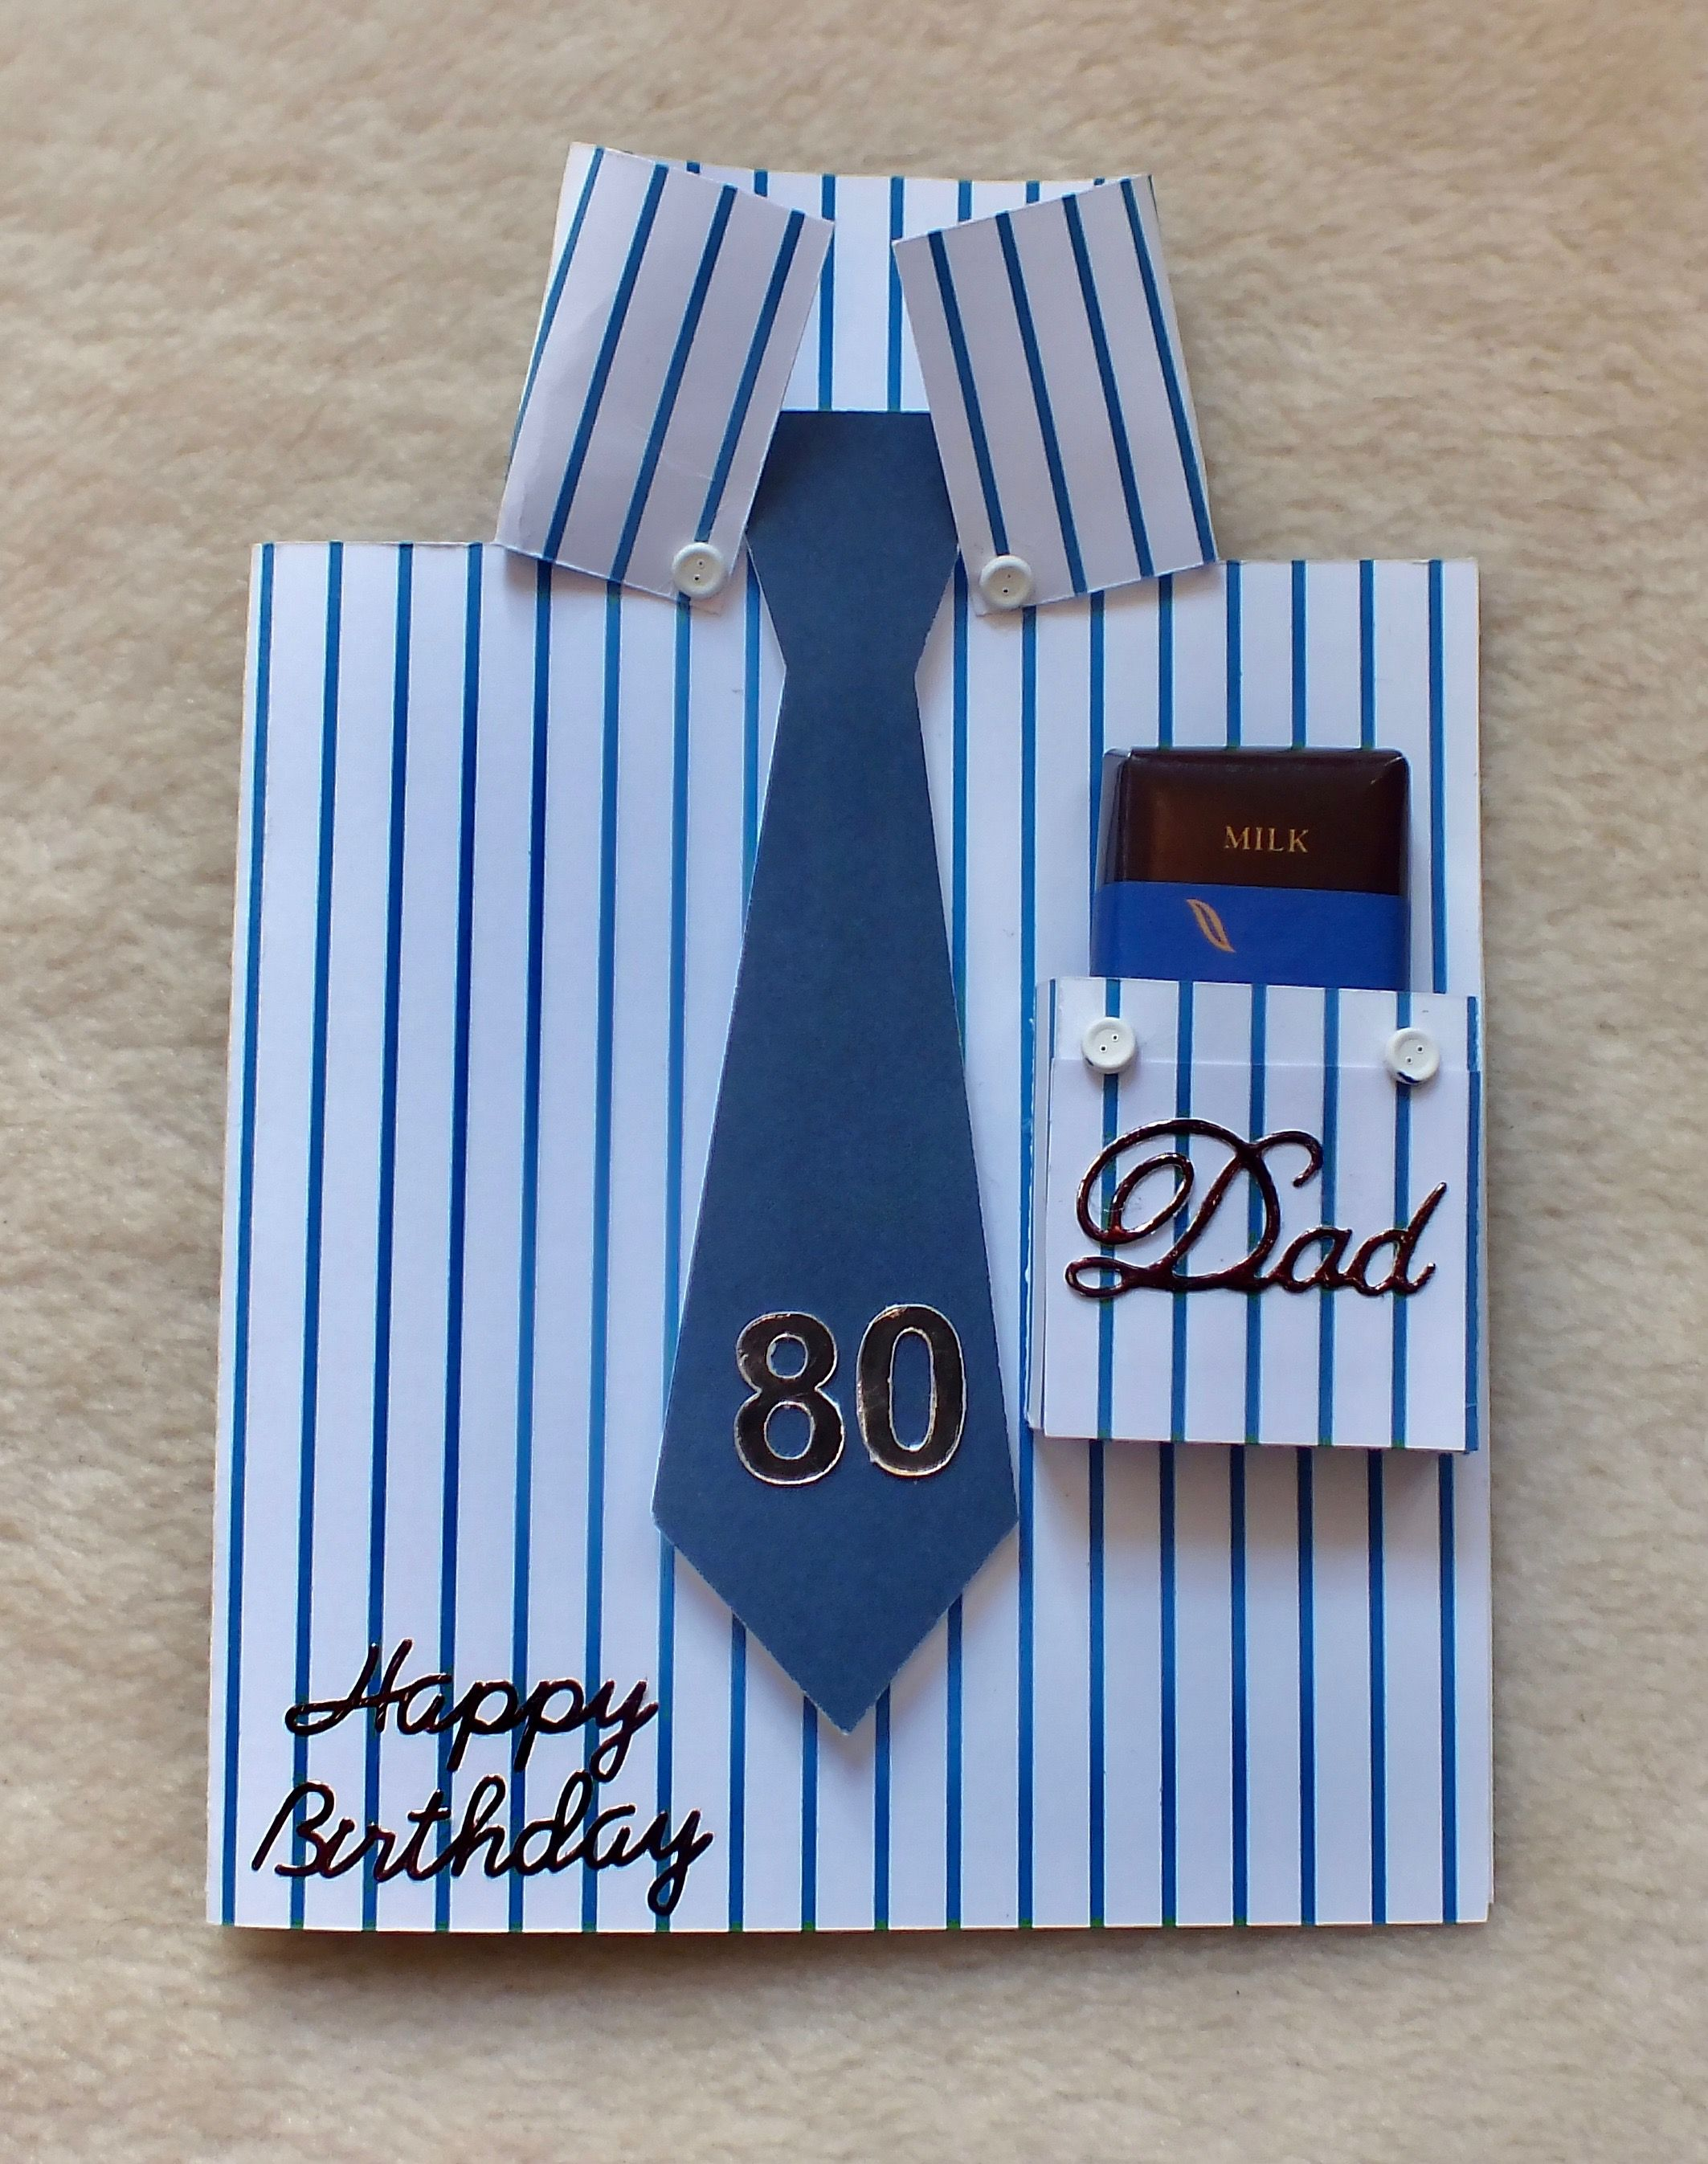 Handmade Bespoke Pinstripe Shirt And Tie 80th Birthday Card With Free Chocolate In The Pocket